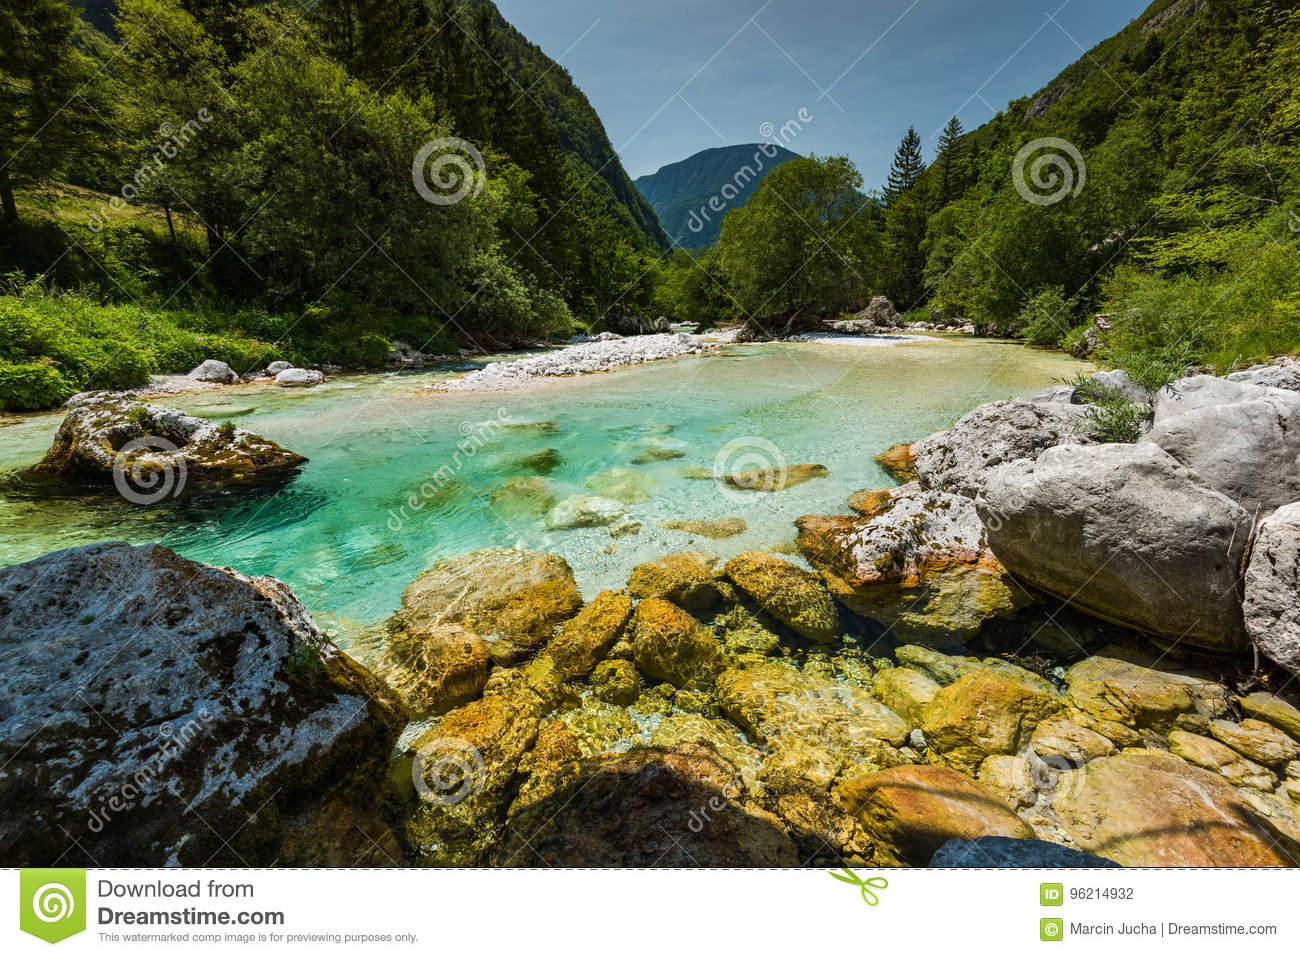 Turquoise water in Soca river, Slovenia